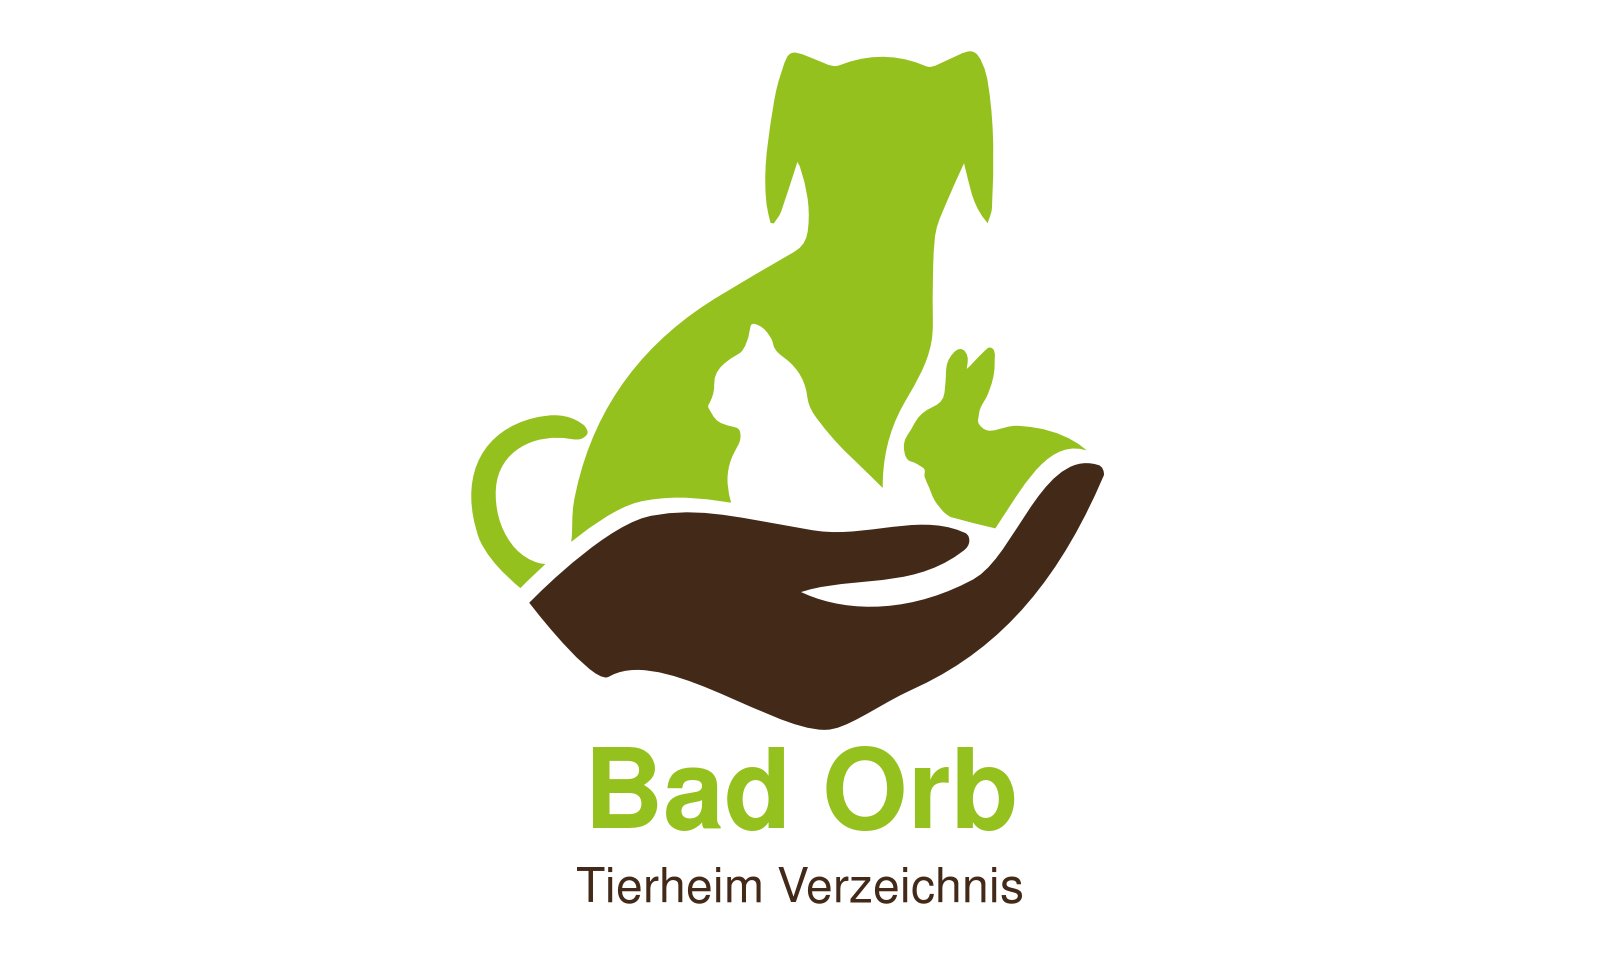 Tierheim Bad Orb